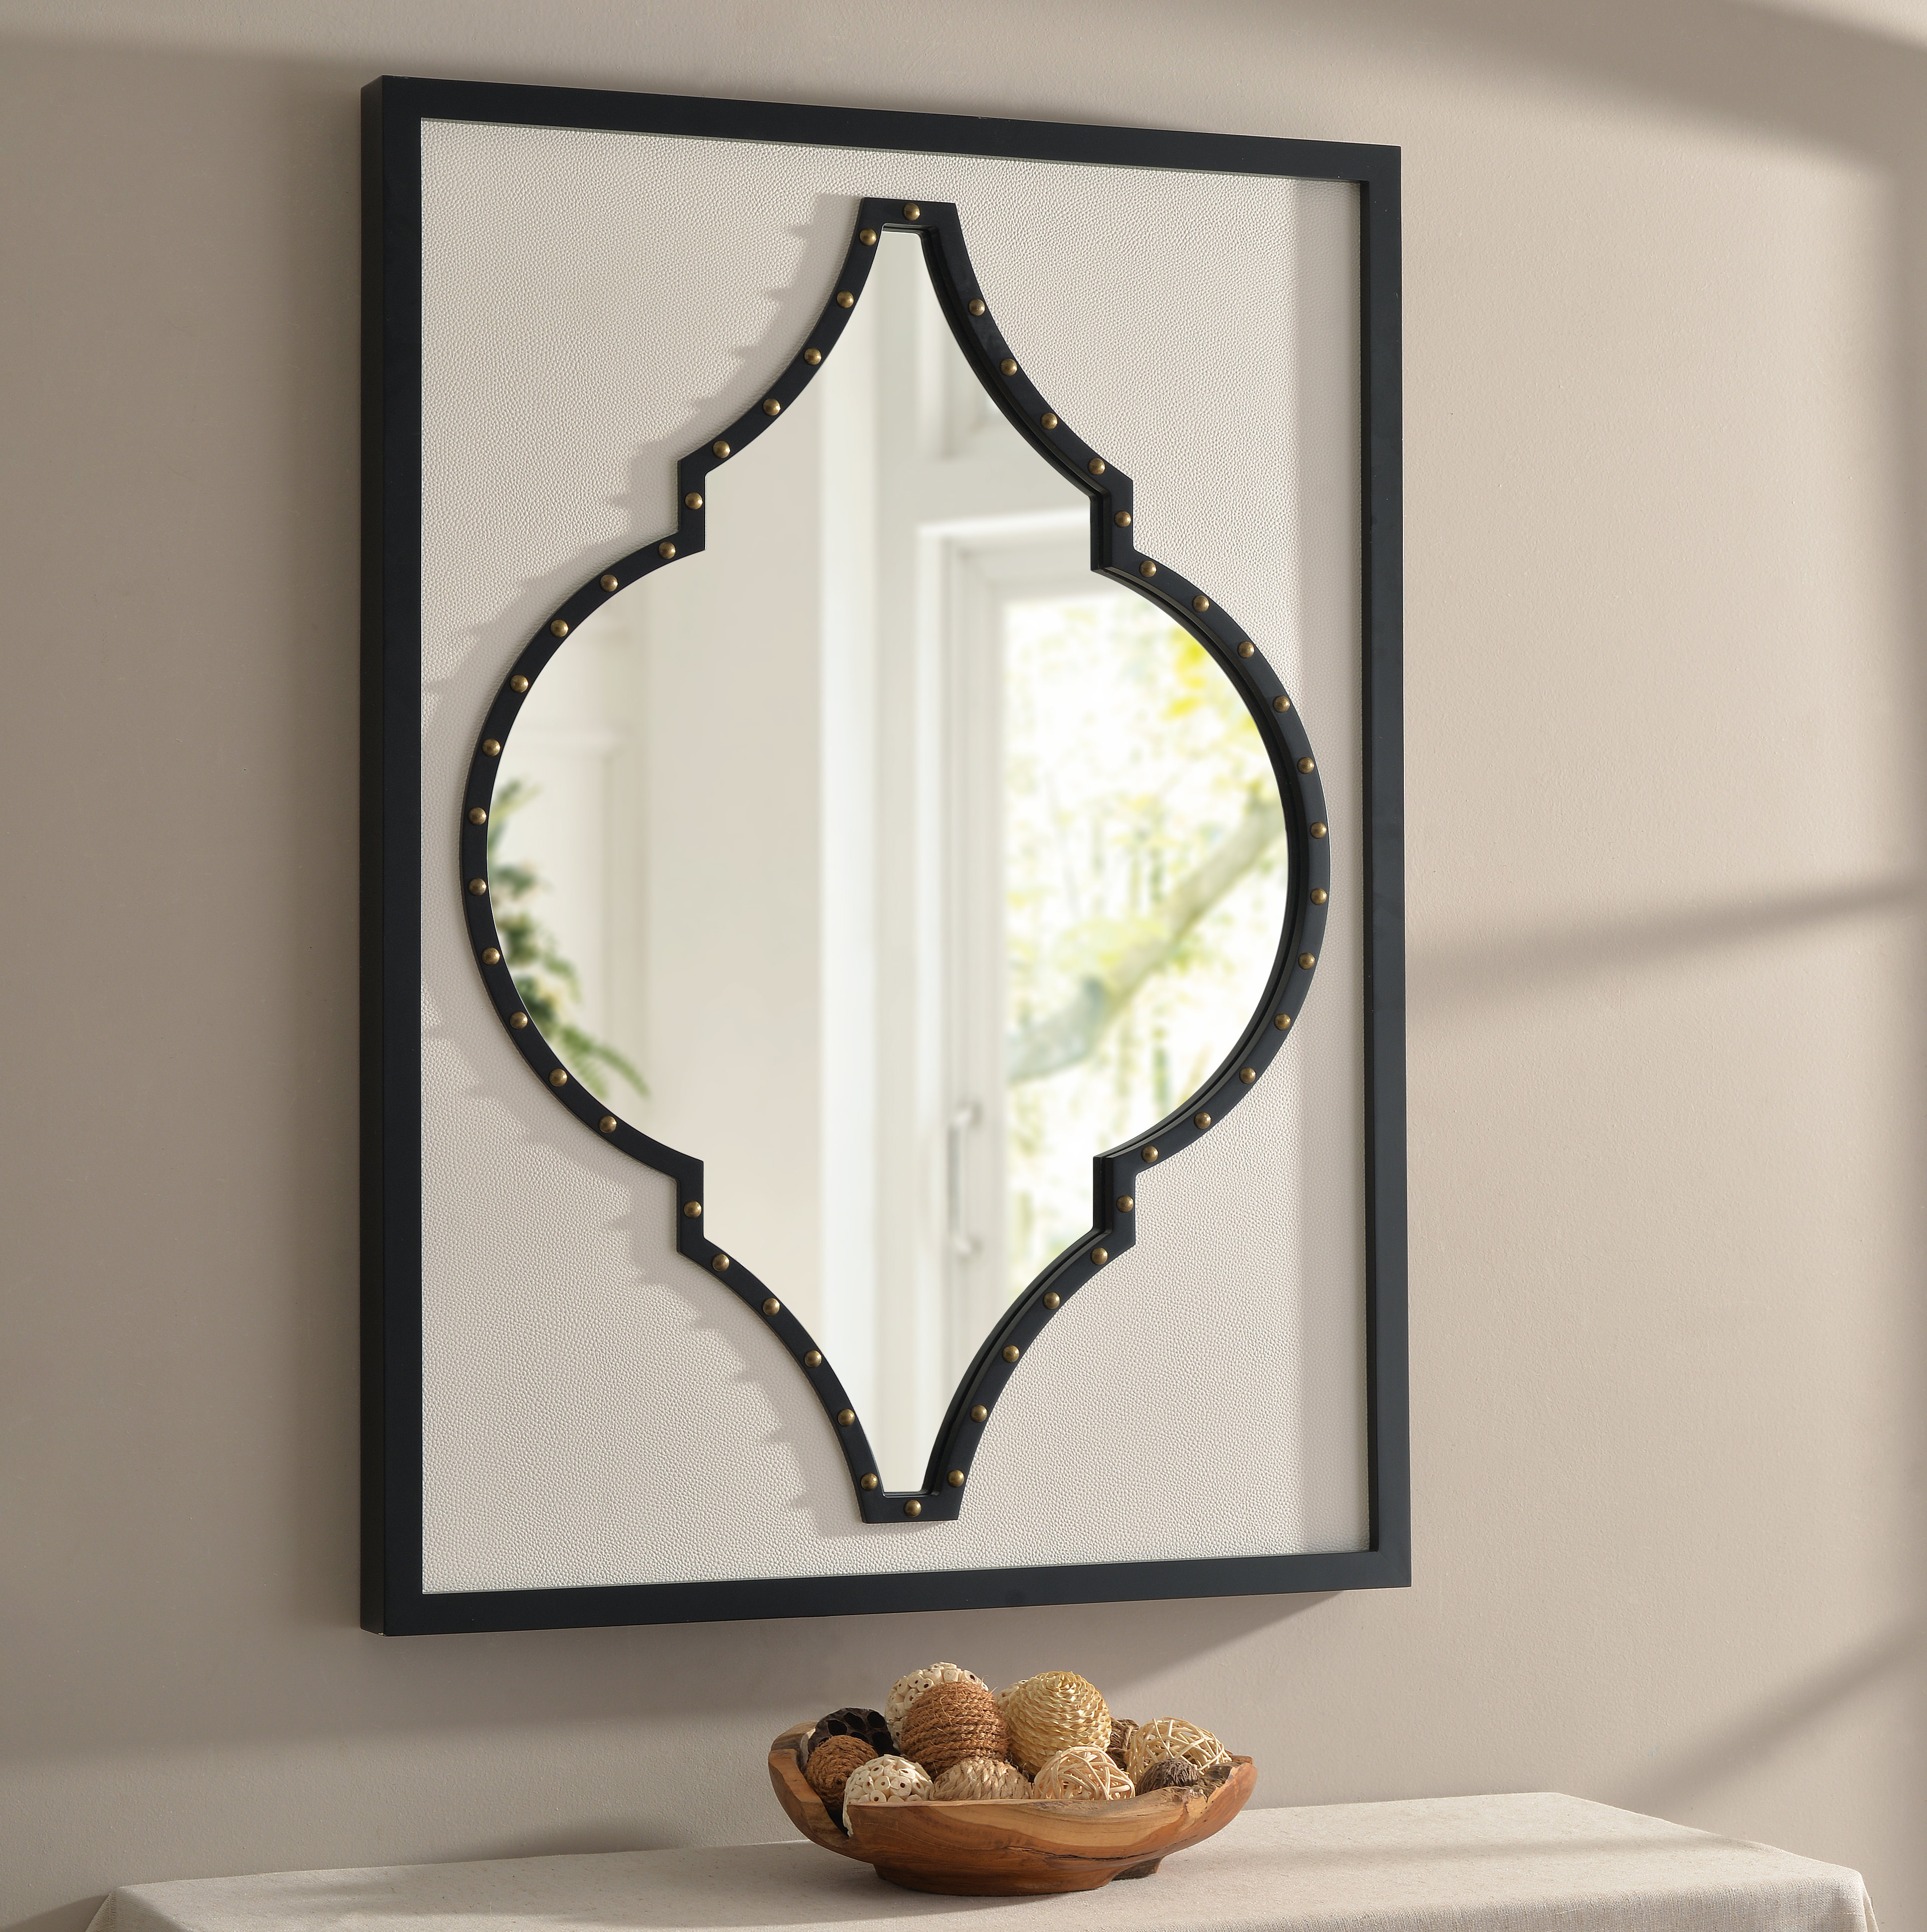 Woll Accent Mirror Intended For Polito Cottage/country Wall Mirrors (Image 20 of 20)